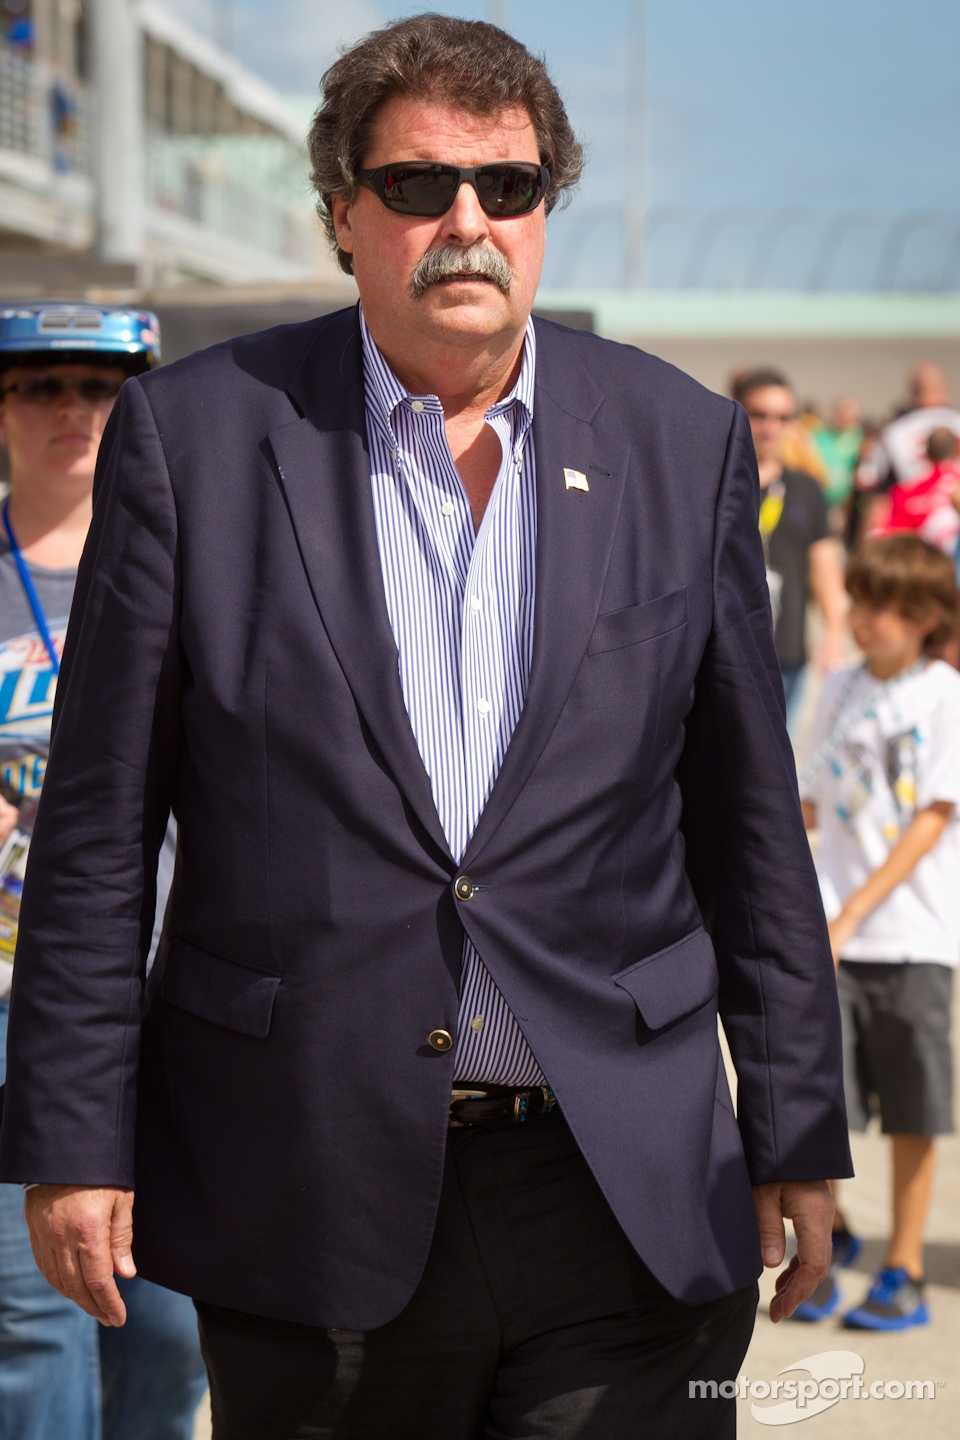 NASCAR President Mike Helton